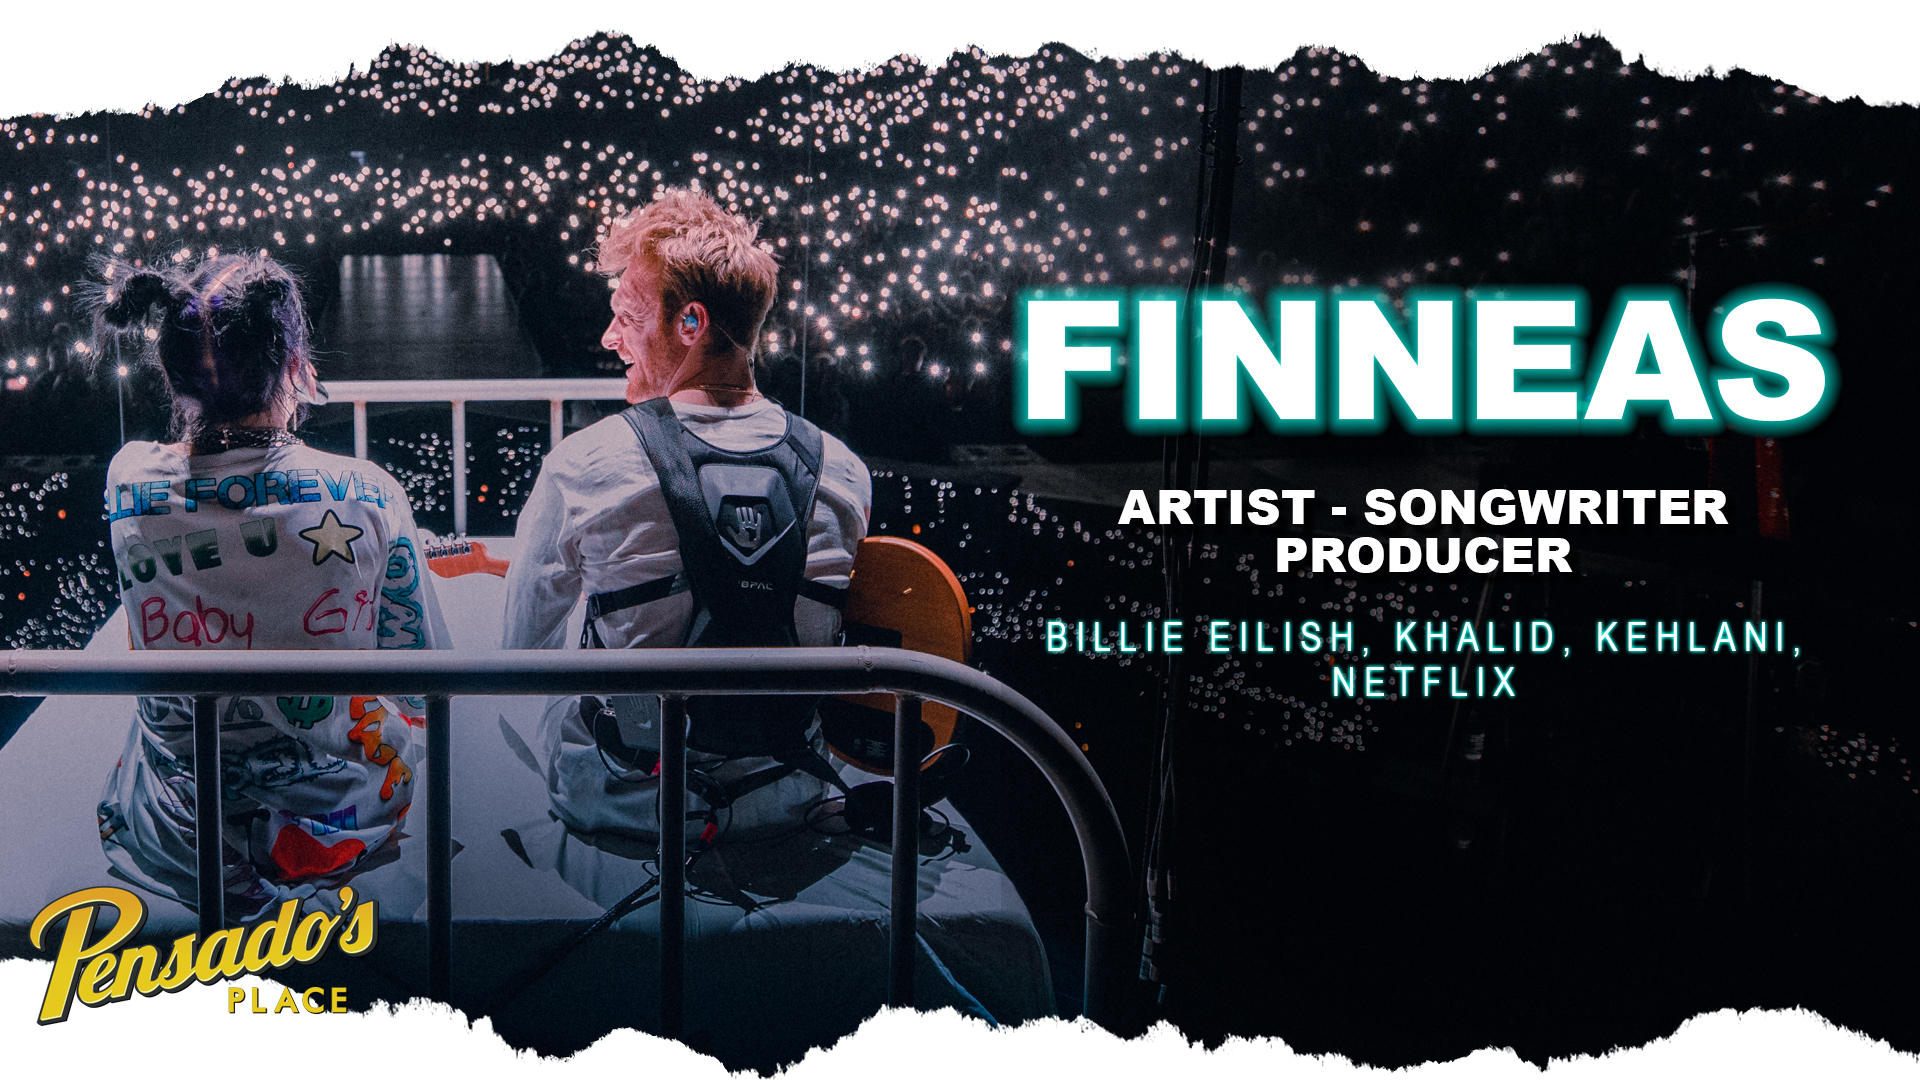 Artist / Songwriter / Producer, FINNEAS